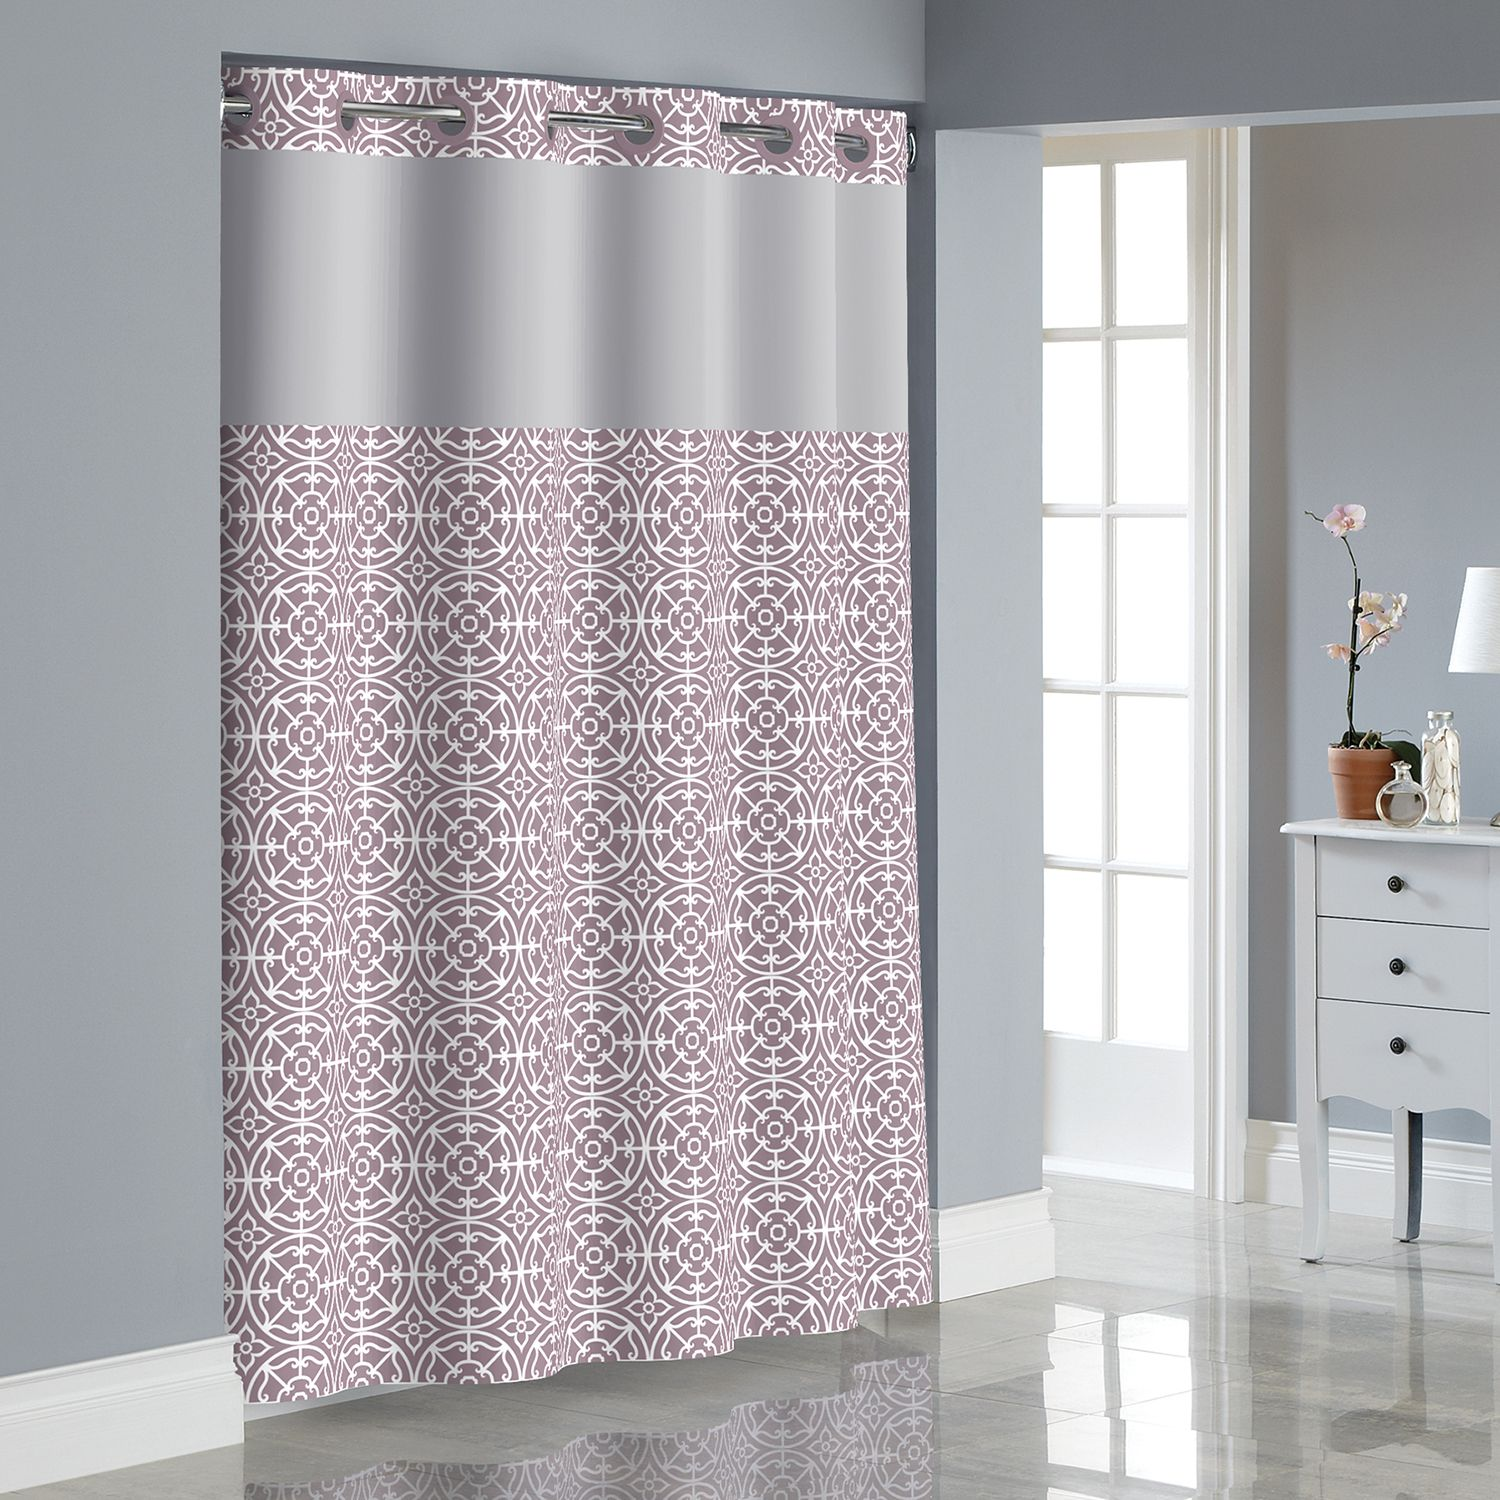 Hookless Medallion Shower Curtain With Liner. Lavender Blue Yellow